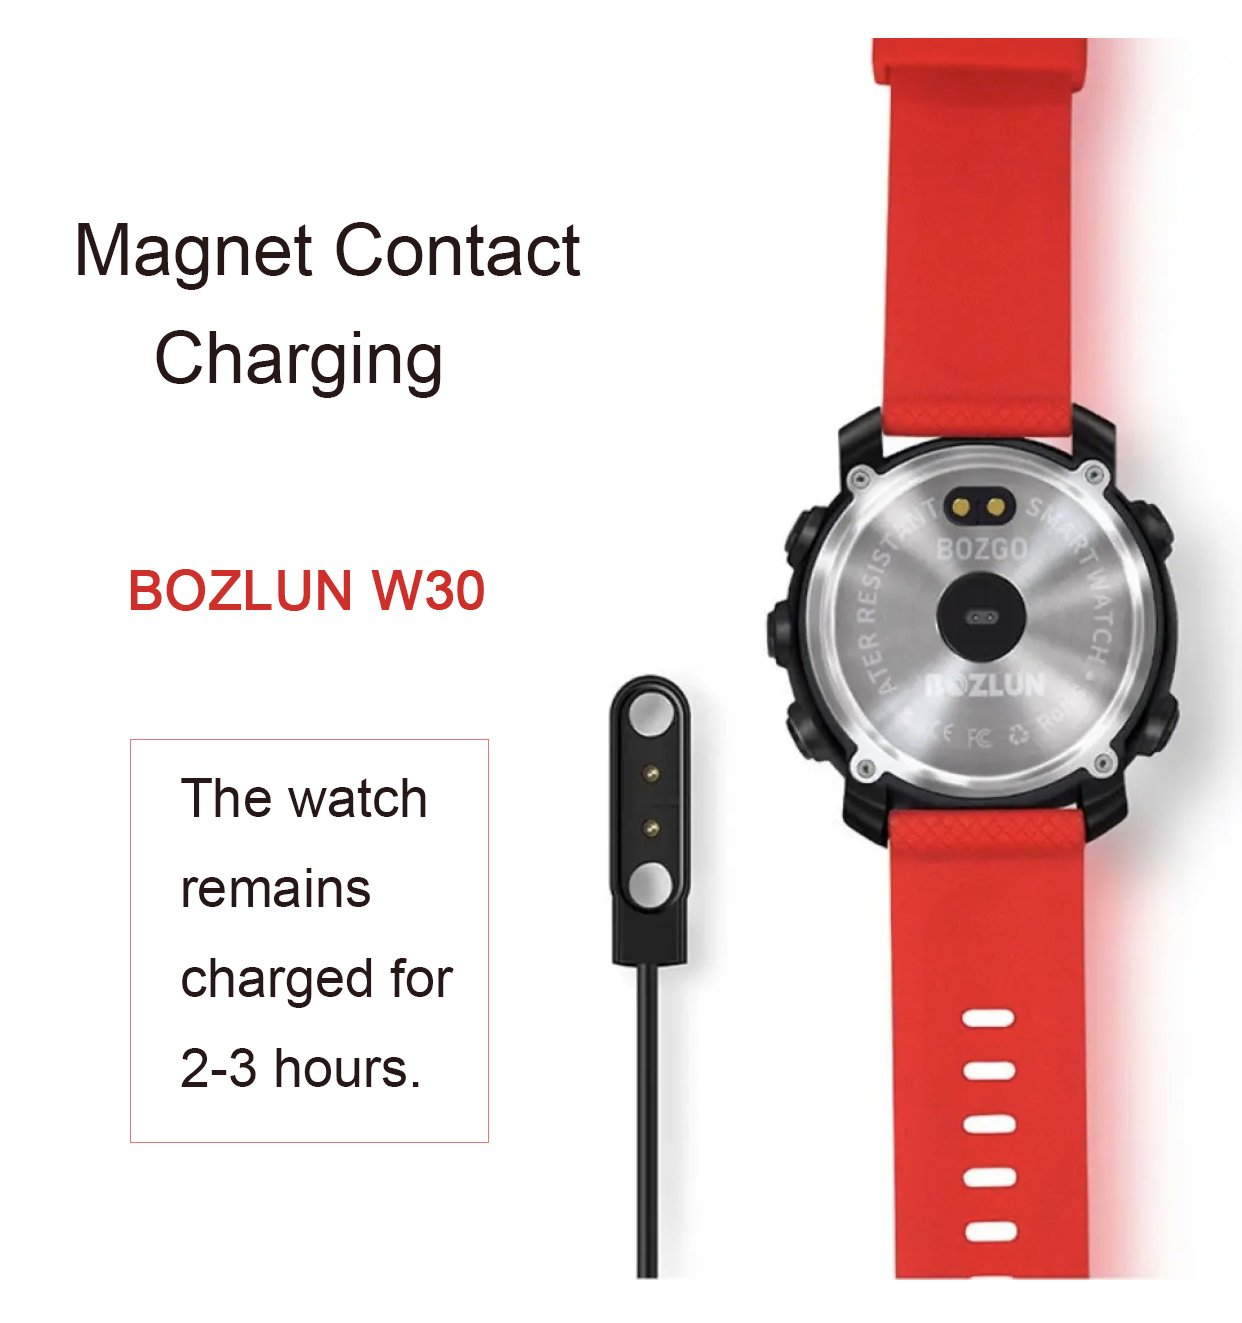 Bozlunofficial BOZLUN W30-W31 SmartWatch-Replacement Charger